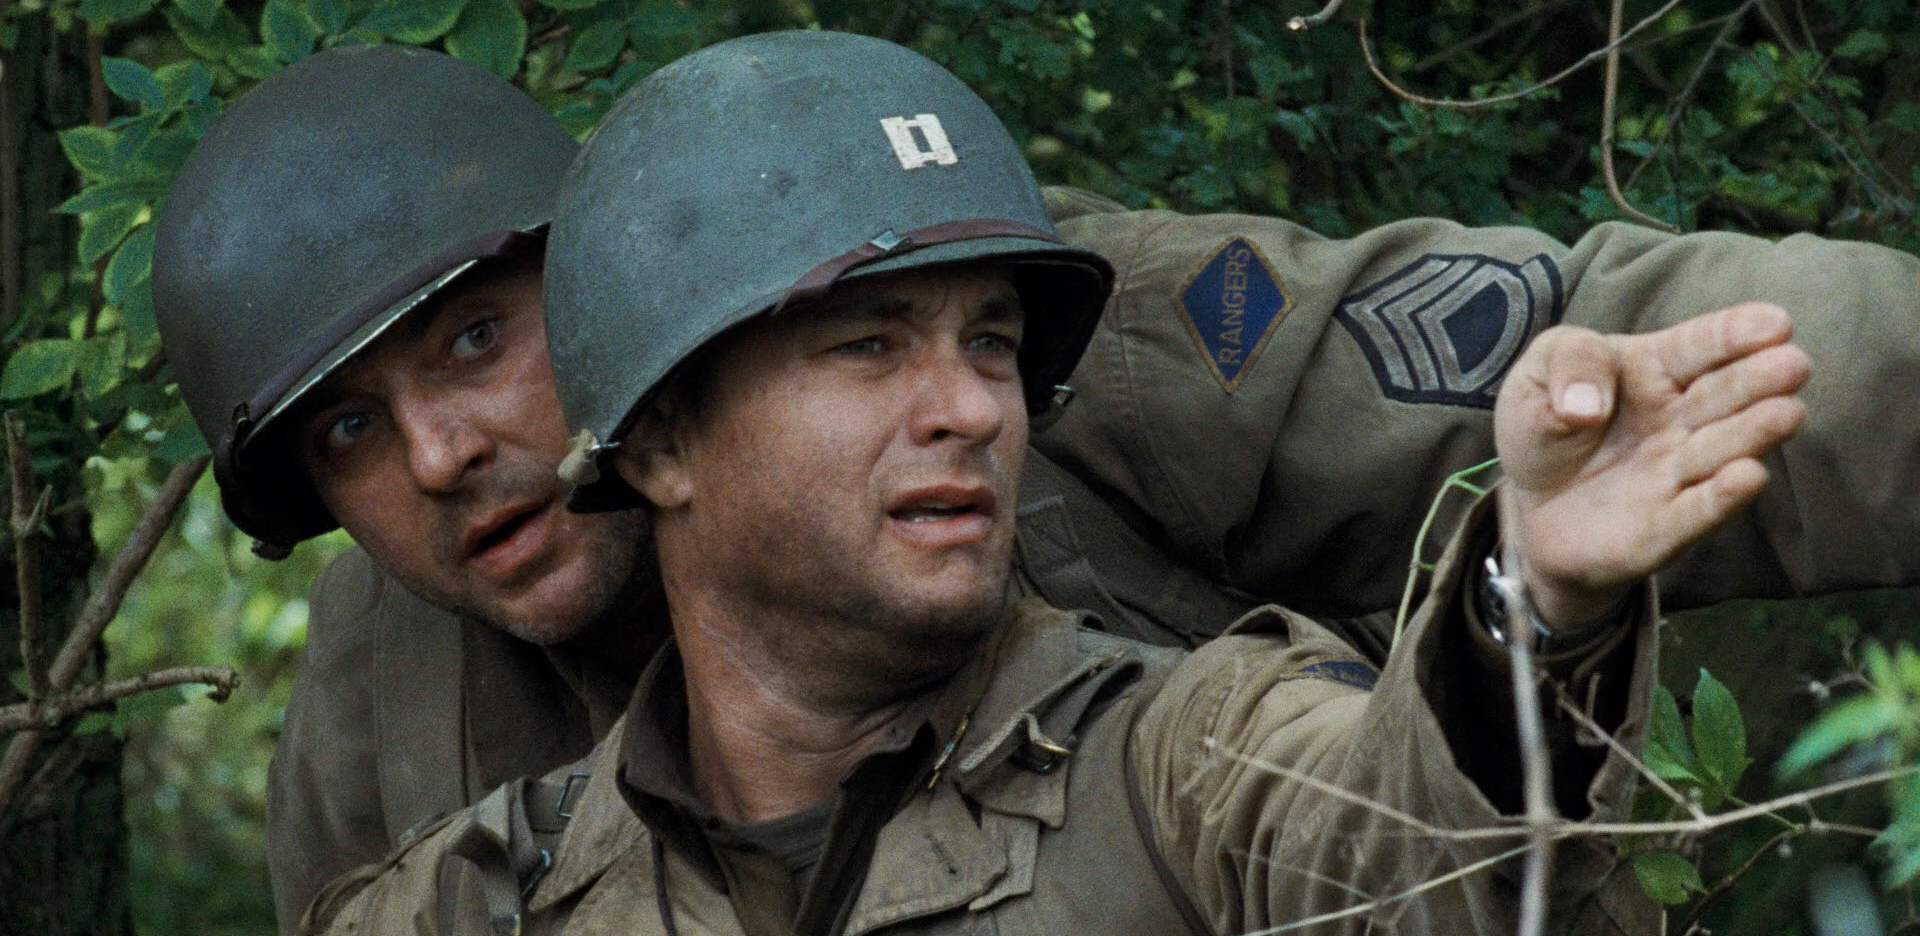 saving private ryan by steven spielberg Steven spielberg directed the movie saving private ryan an 1998 american epic war film the movie was set during the invasion of normandy in world war ii saving private ryan awards include golden globes, academy awards, mtv movie awards and more.